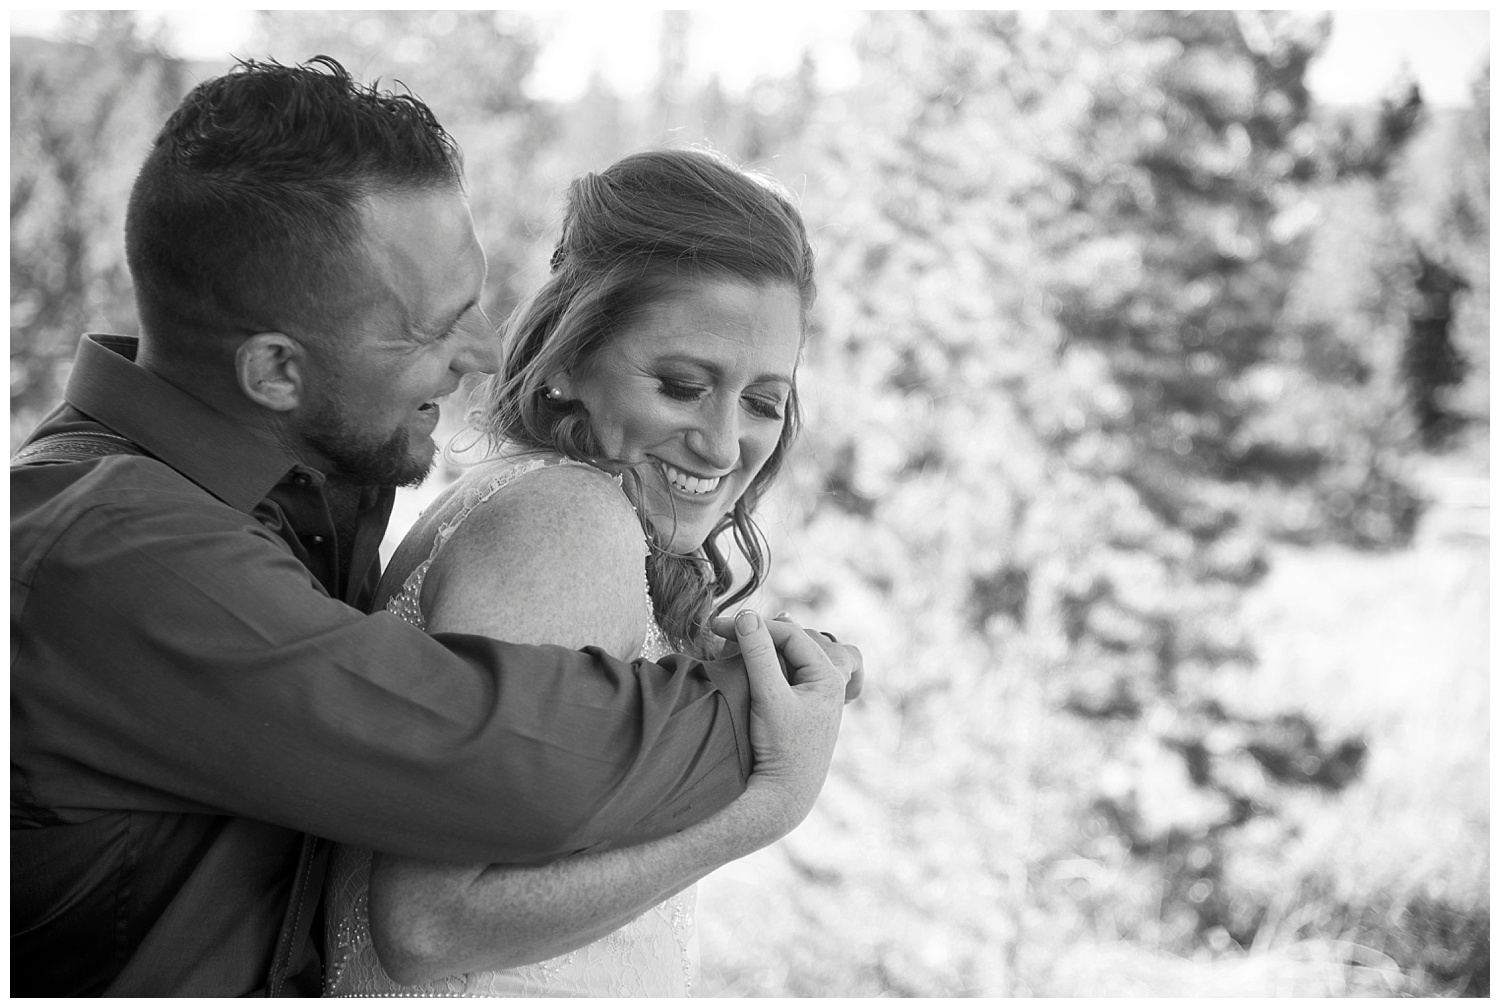 Black and White Bride and Groom Smiling | Carolyn and Shawn's Wild Horse Inn Wedding at Devil's Thumb Ranch | Fraser Colorado Photography | Farm Wedding Photographer | Apollo Fields Photojournalism